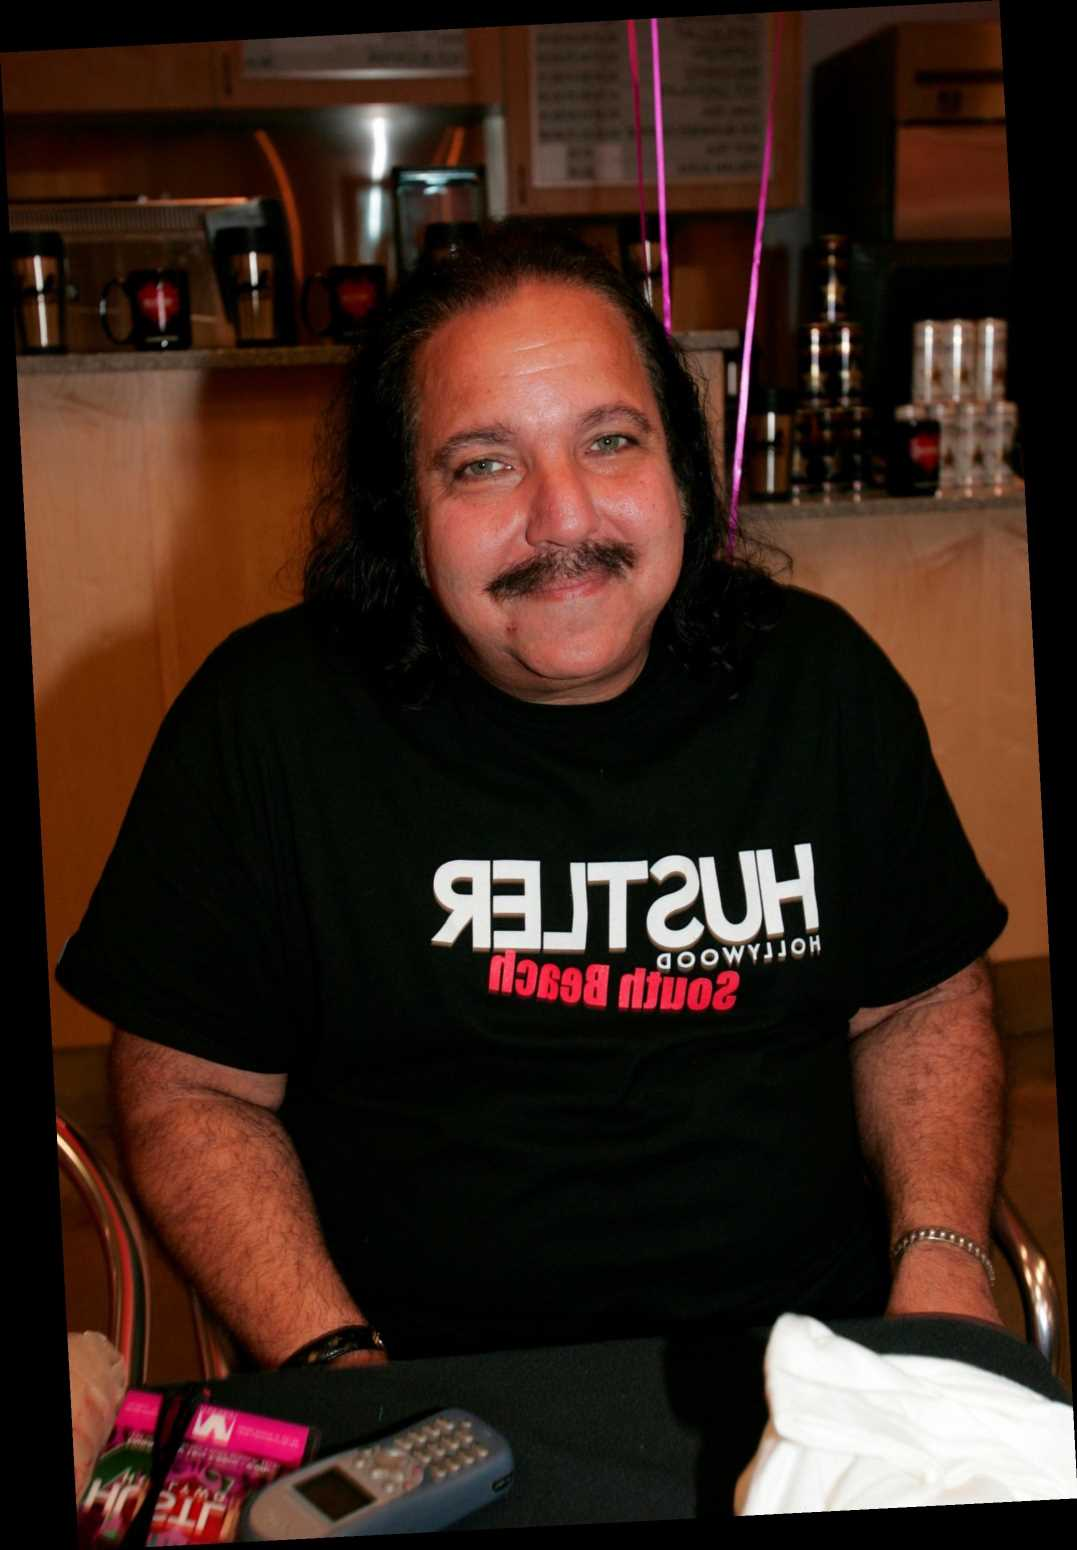 Porn Actor Ron Jeremy Accused of Raping 3 Women, Sexually Assaulting Another